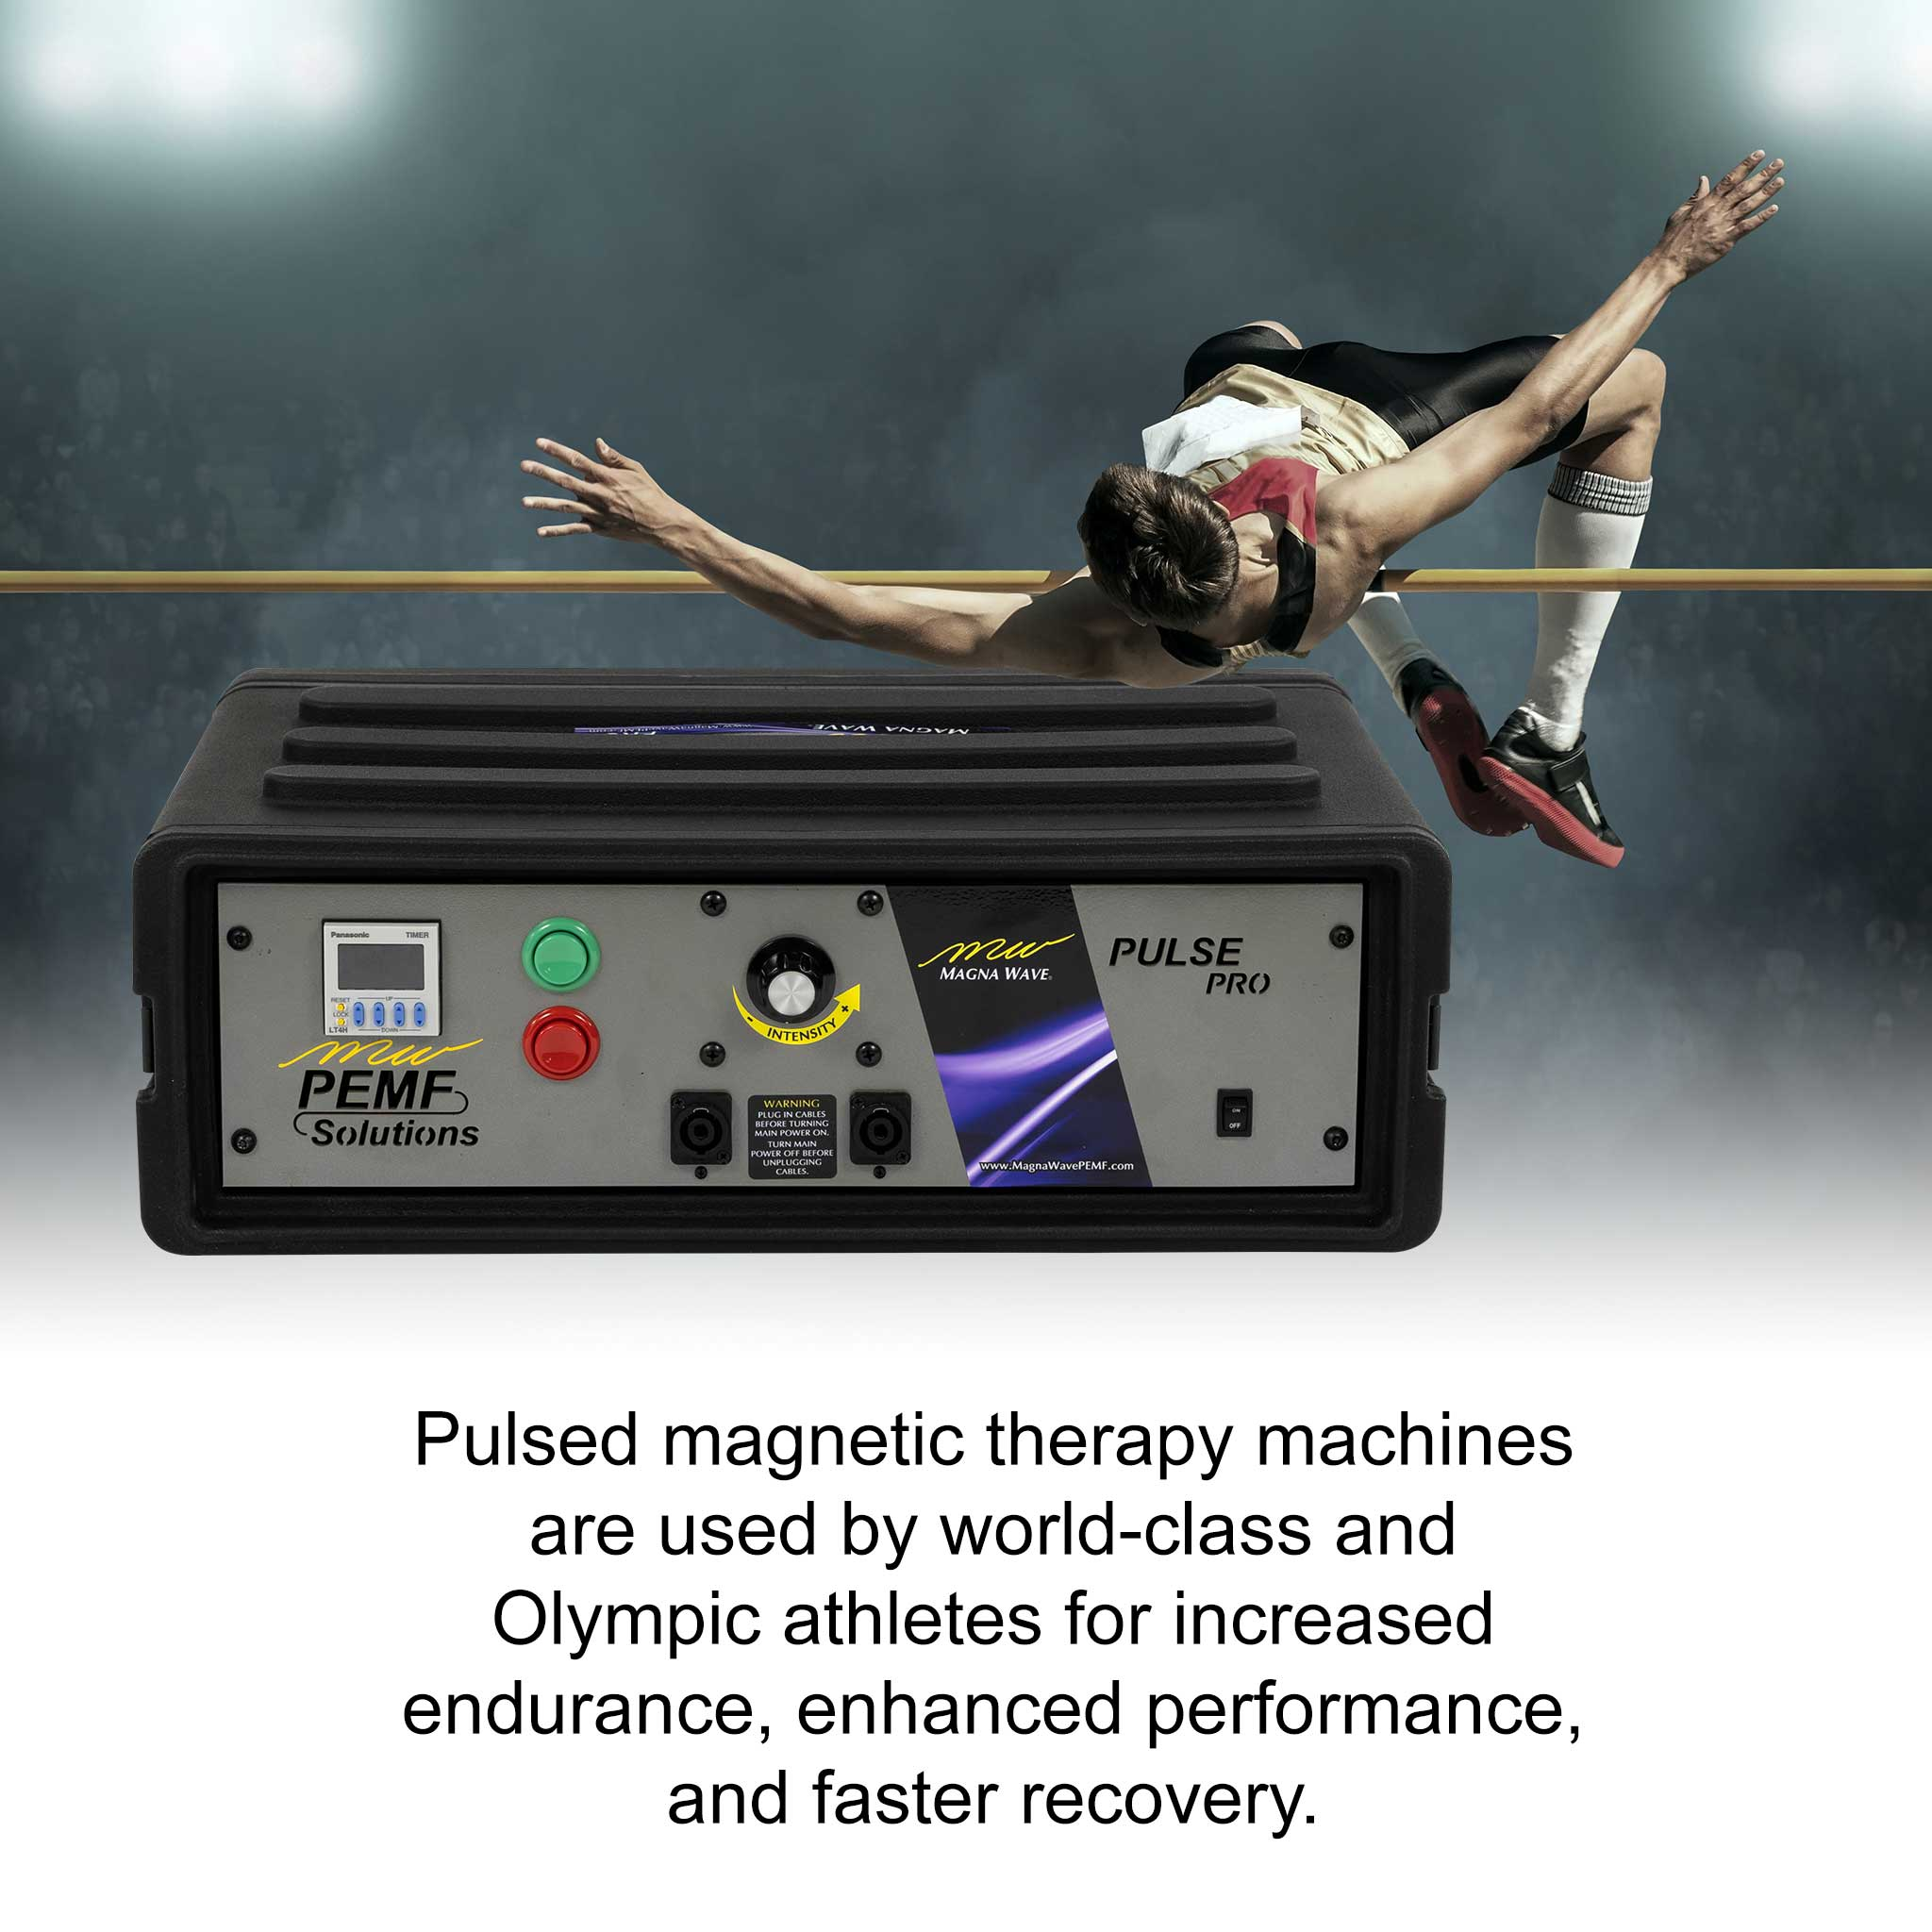 Pulsed magnetic therapy machines are used by world-class and Olympic athletes for increased endurace, enhanced performance, and faster recovery.